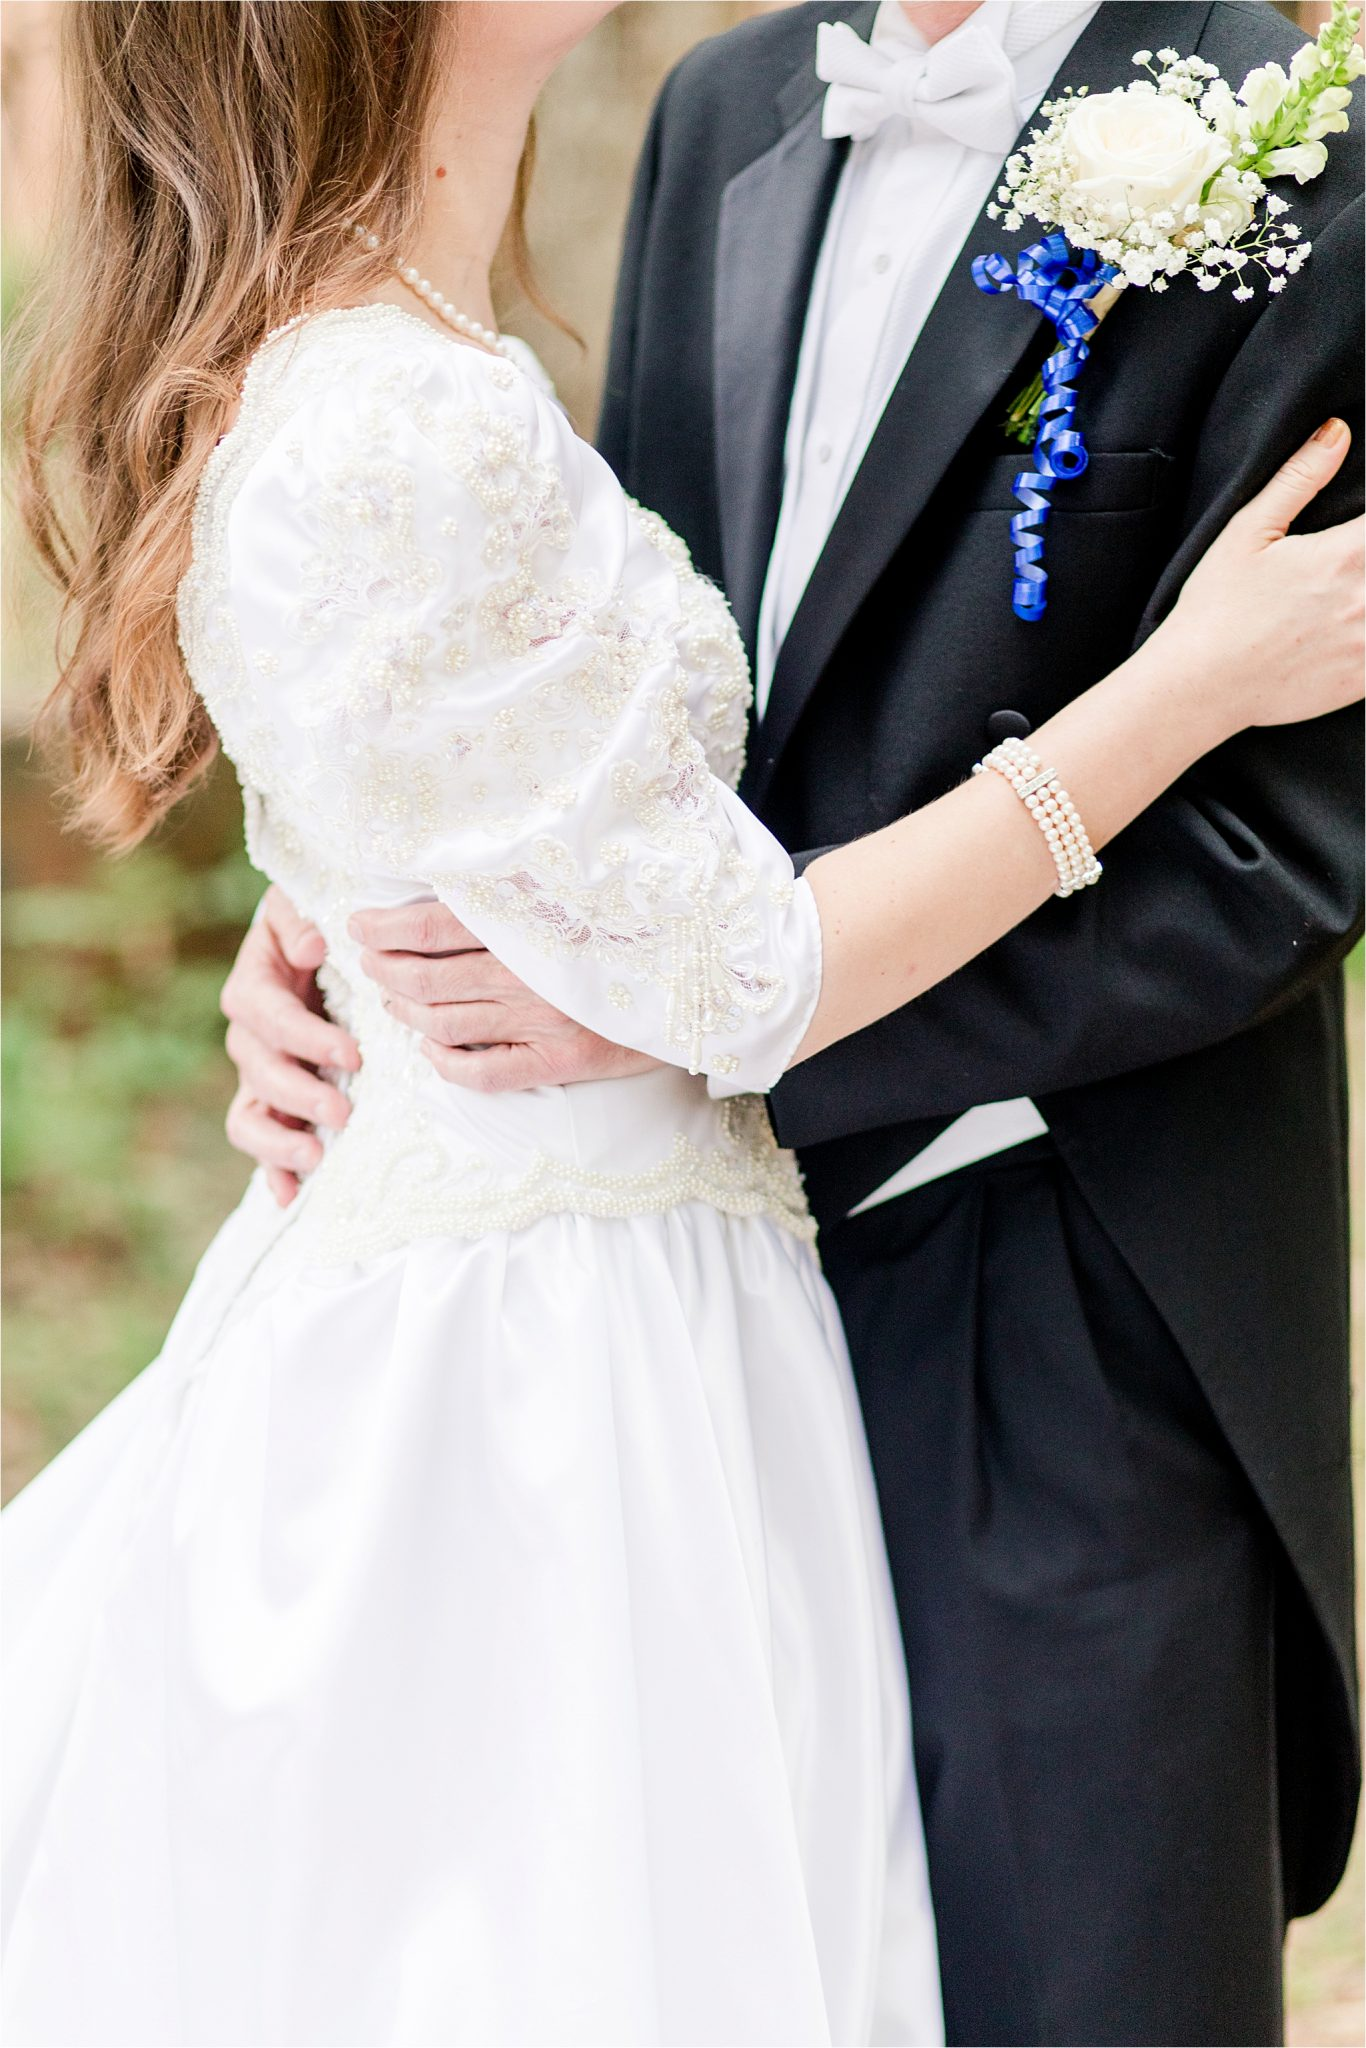 wedding dress with puffy sleeves-pearl beading-rose corsage-bride and groom